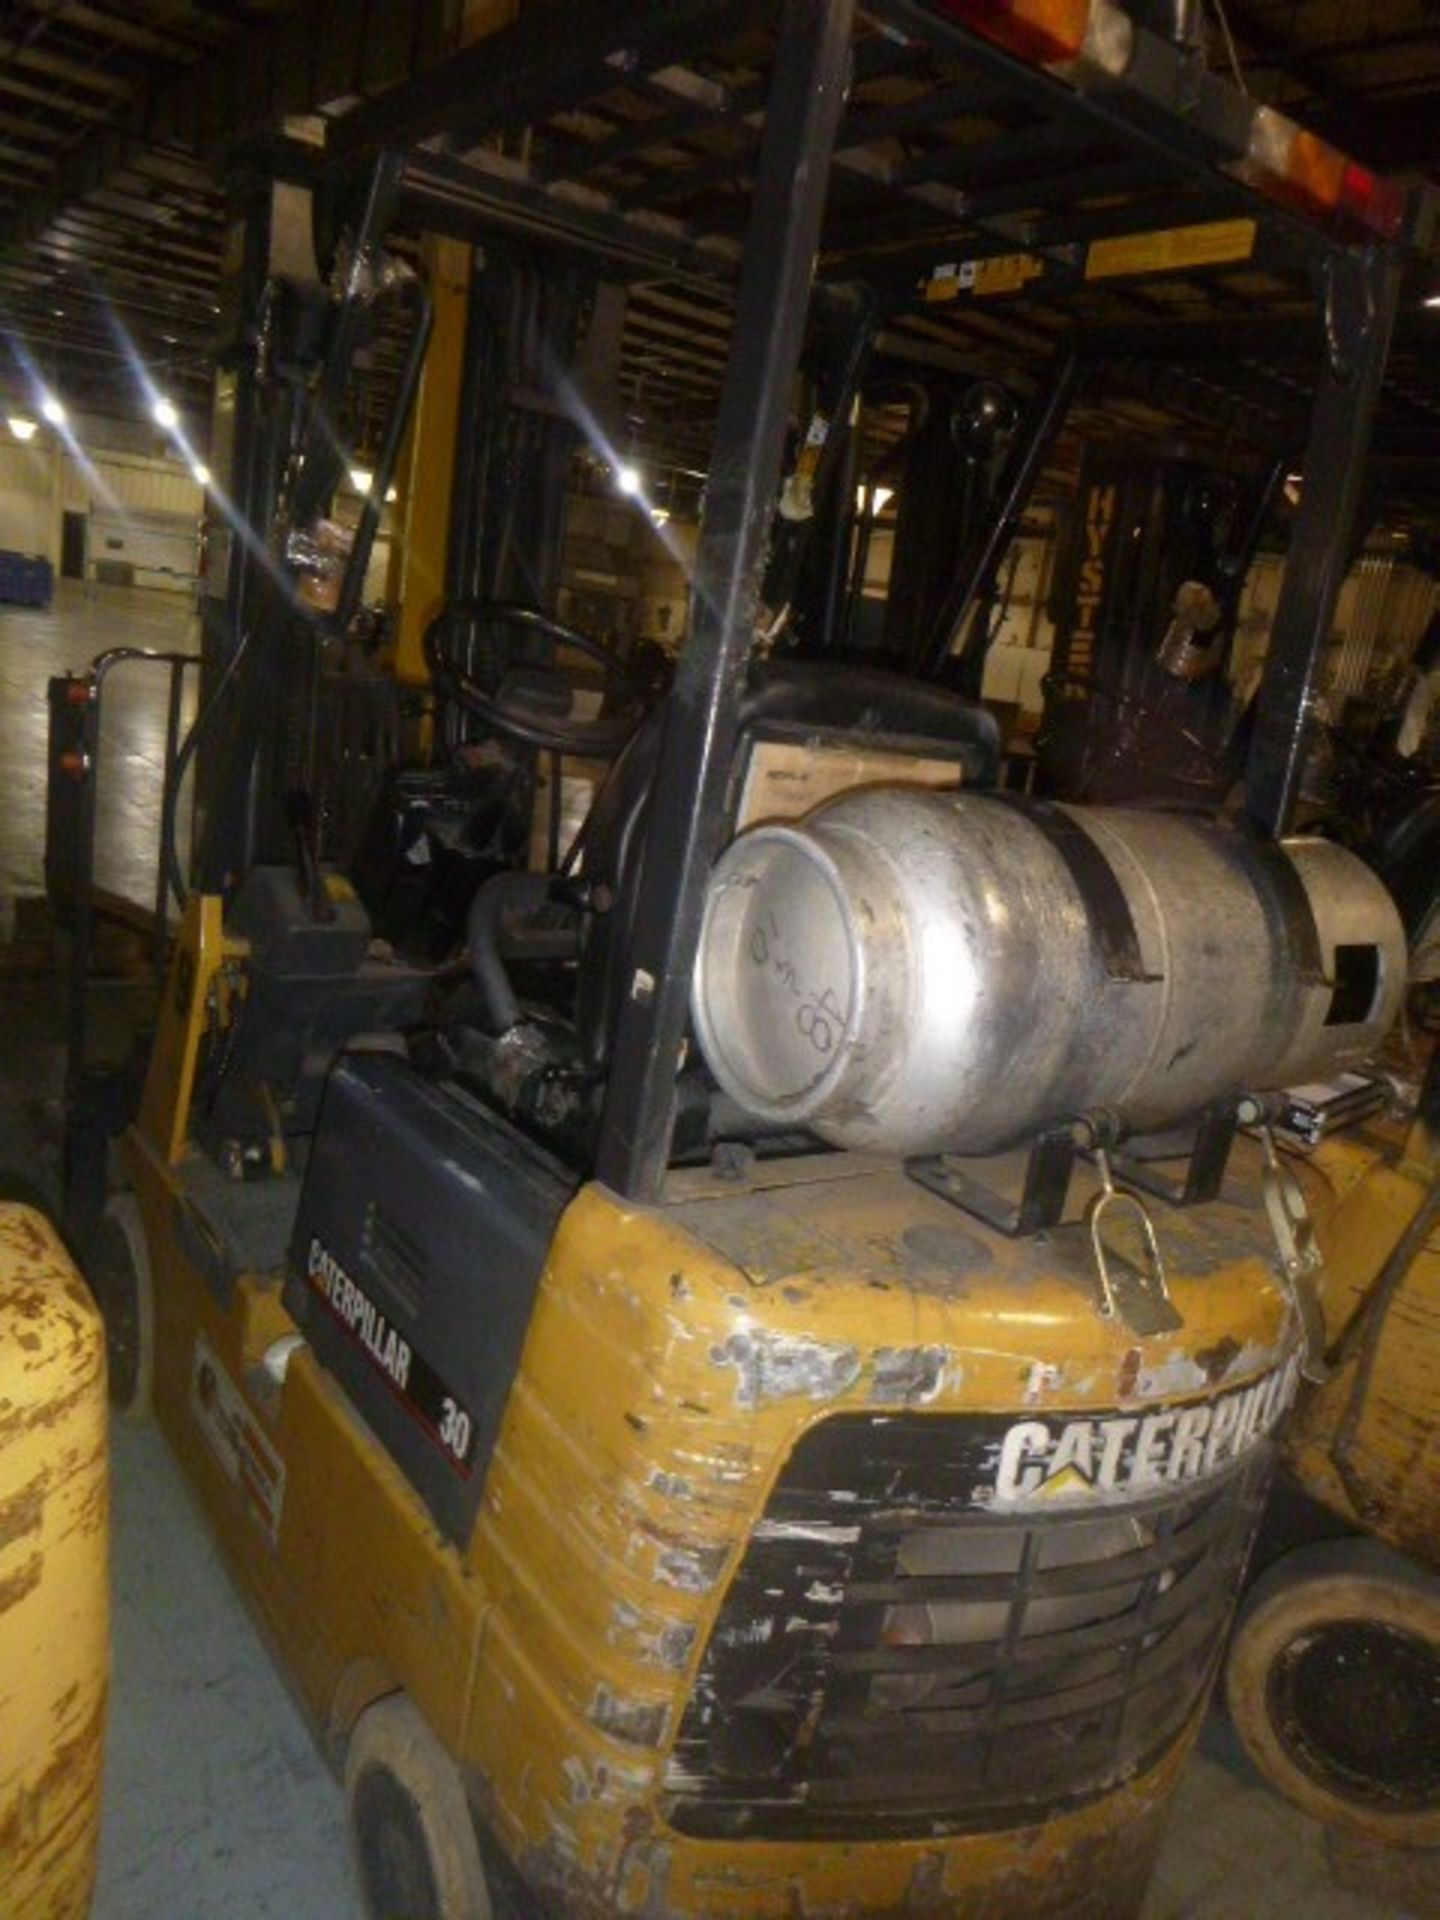 Lot 136 - (4) FORKLIFTS; HYSTER 40, CATERPILLAR 30, HYSTER 40, HYSTER 40 (NON-FUNCTIONAL UNITS * PARTS ONLY)